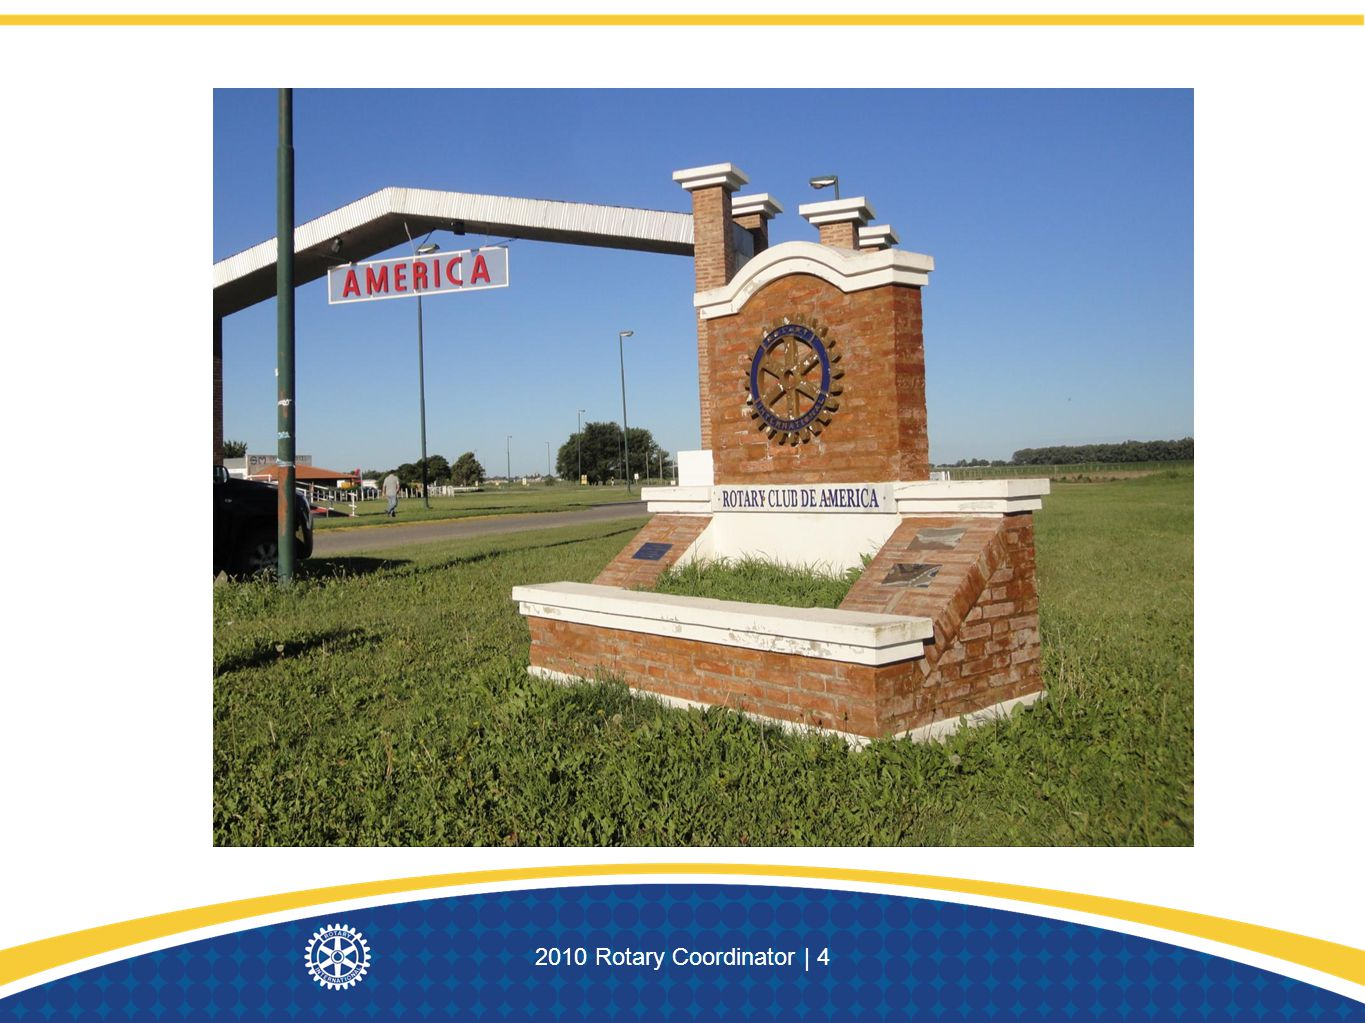 This Rotary monument stands when you entert the town of America in Argentina.